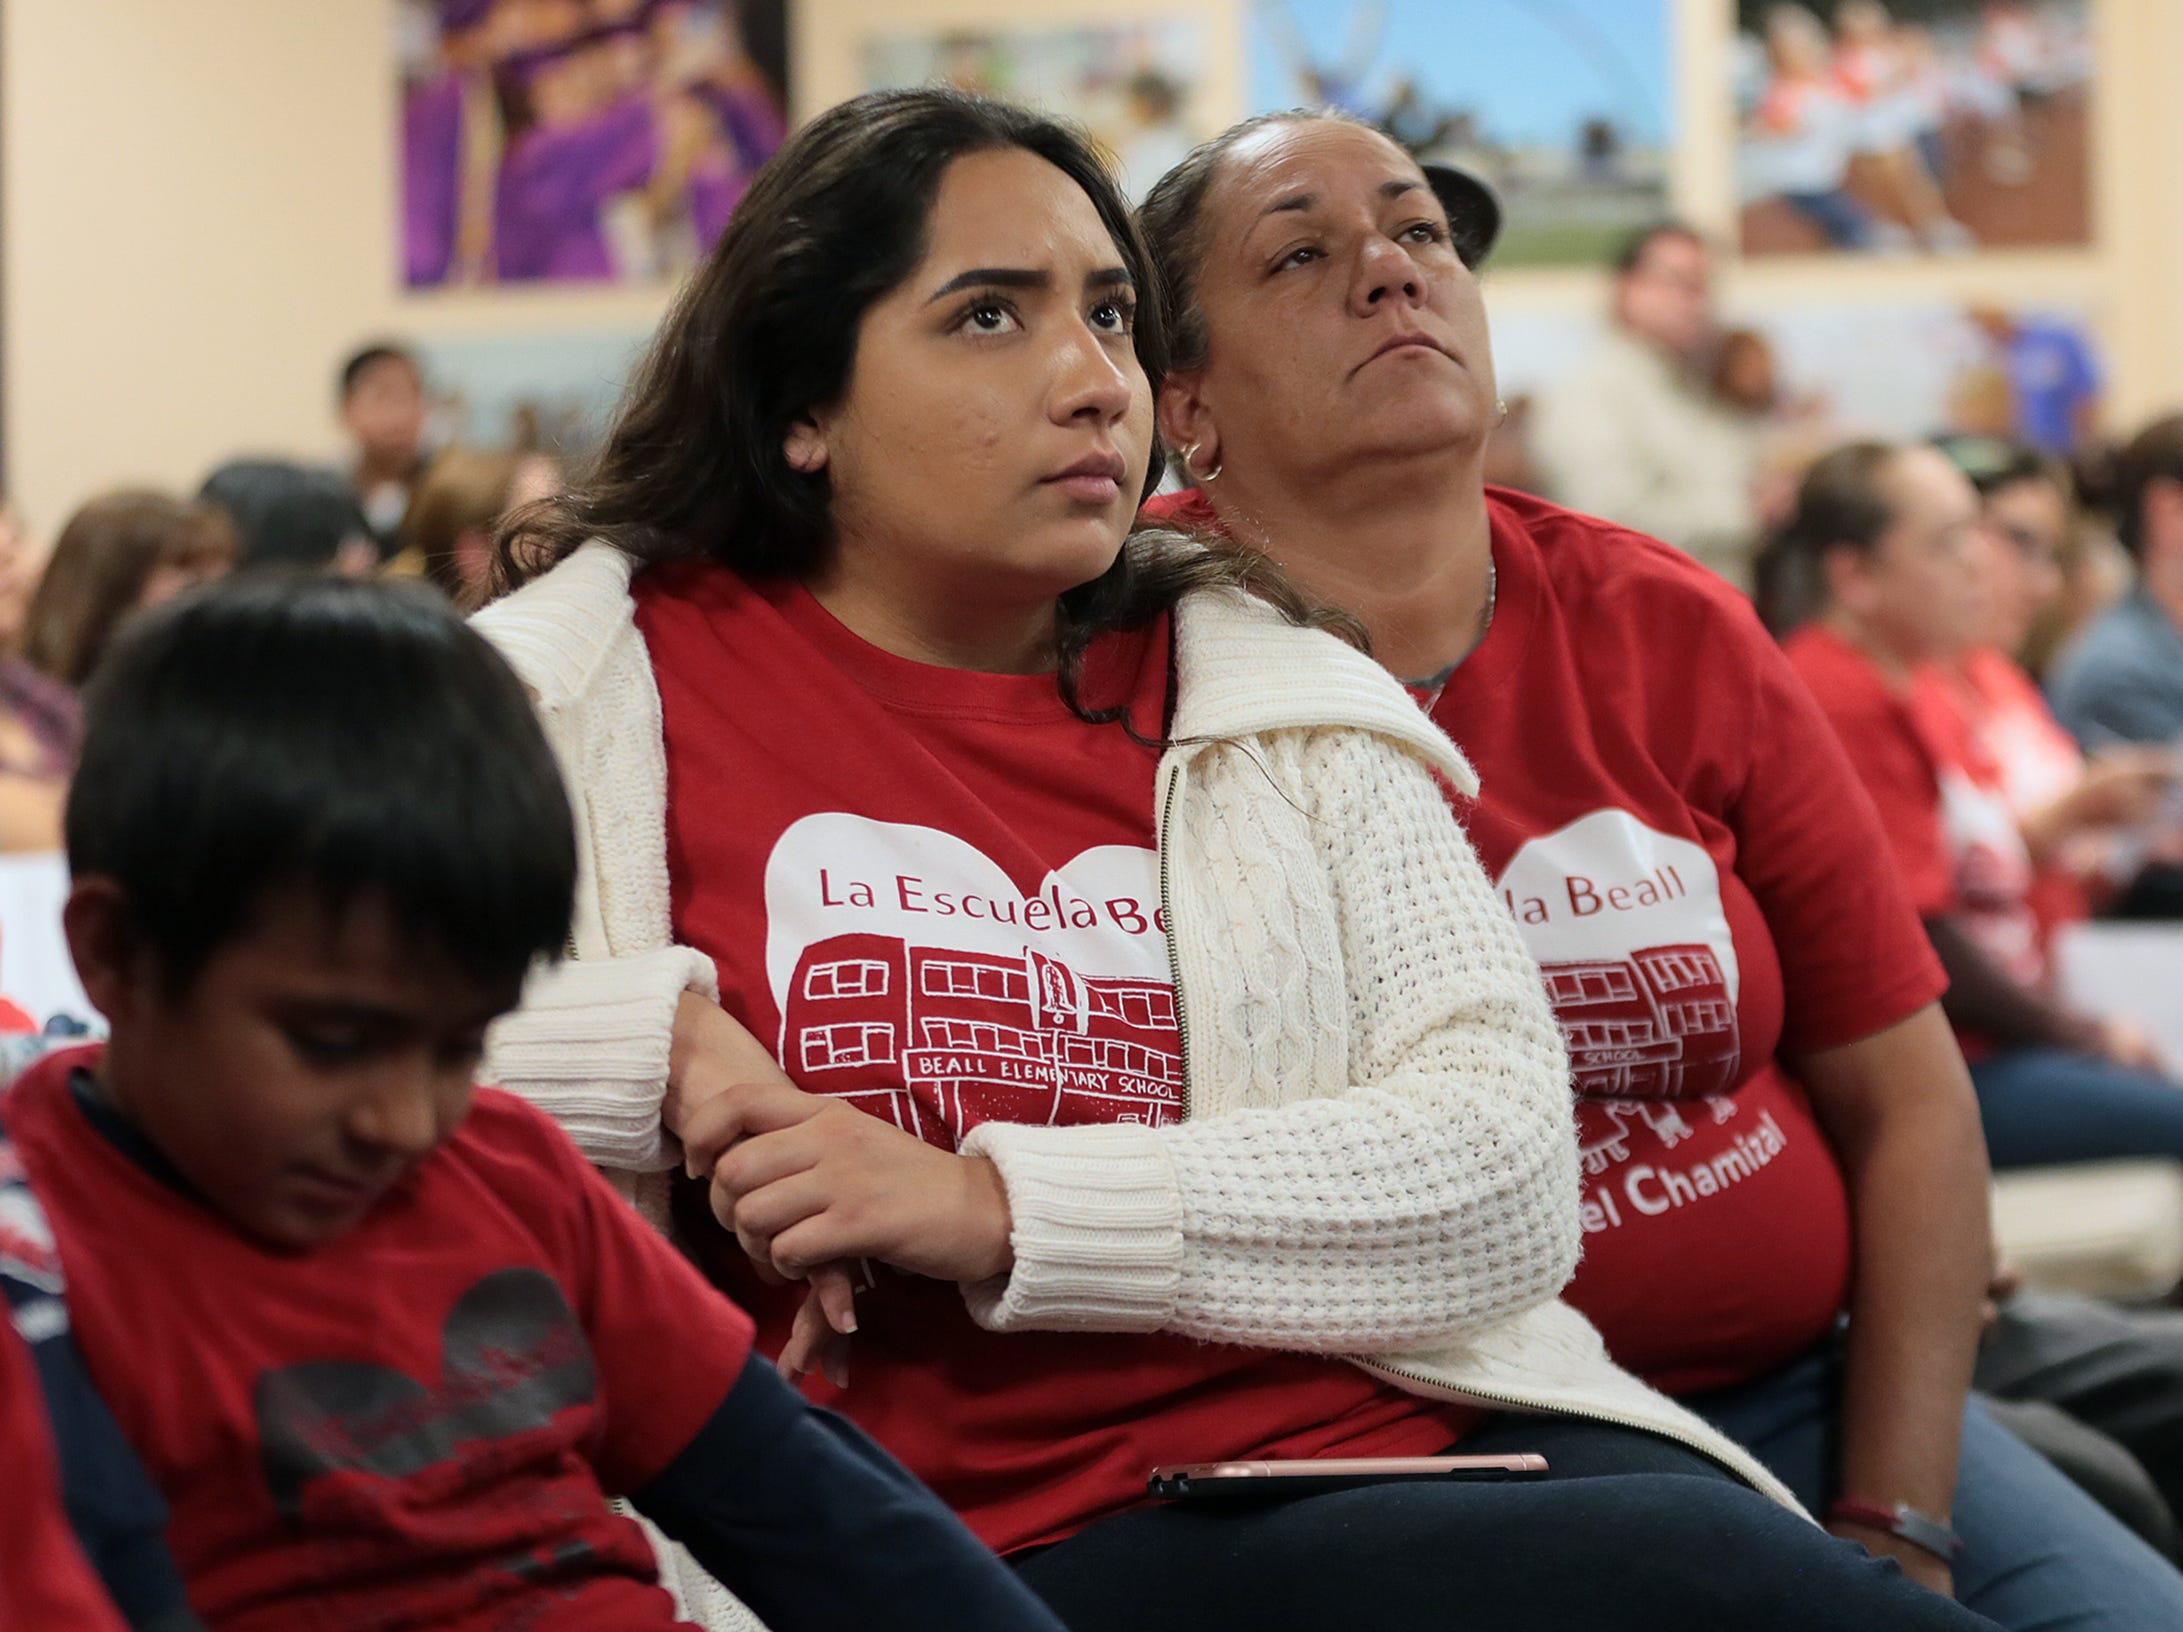 Parents and educators pleaded with the EPISD Board not to close their schools Tuesday night. Citing declining enrollment, the board voted to close four EPISD schools.